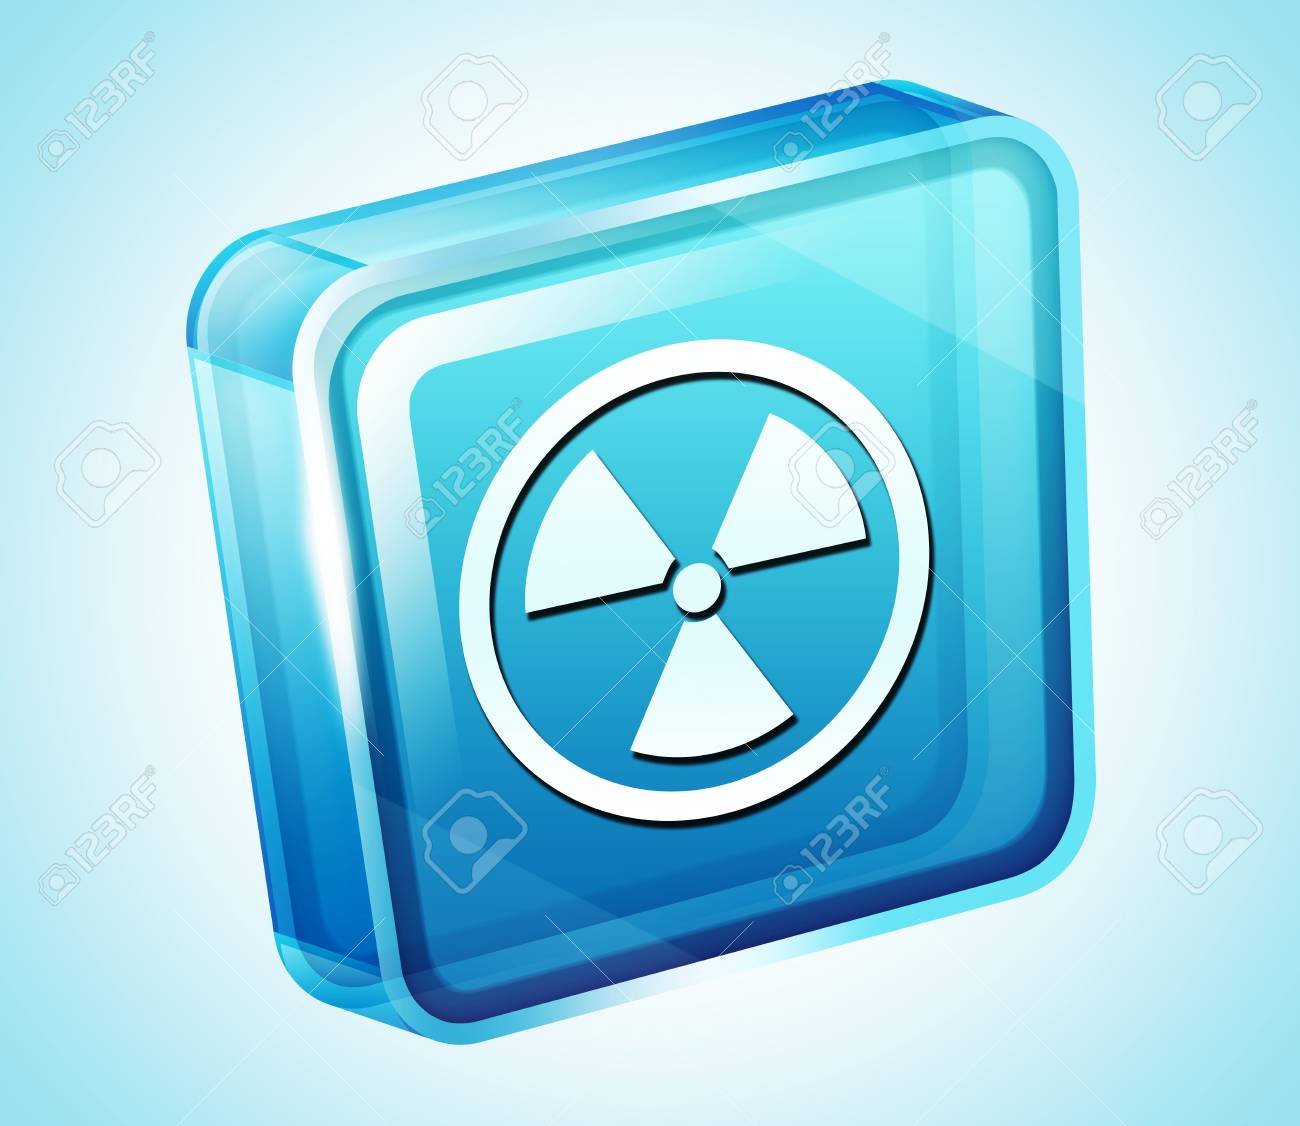 Transparent to the 3d icon Stock Photo - 15903661